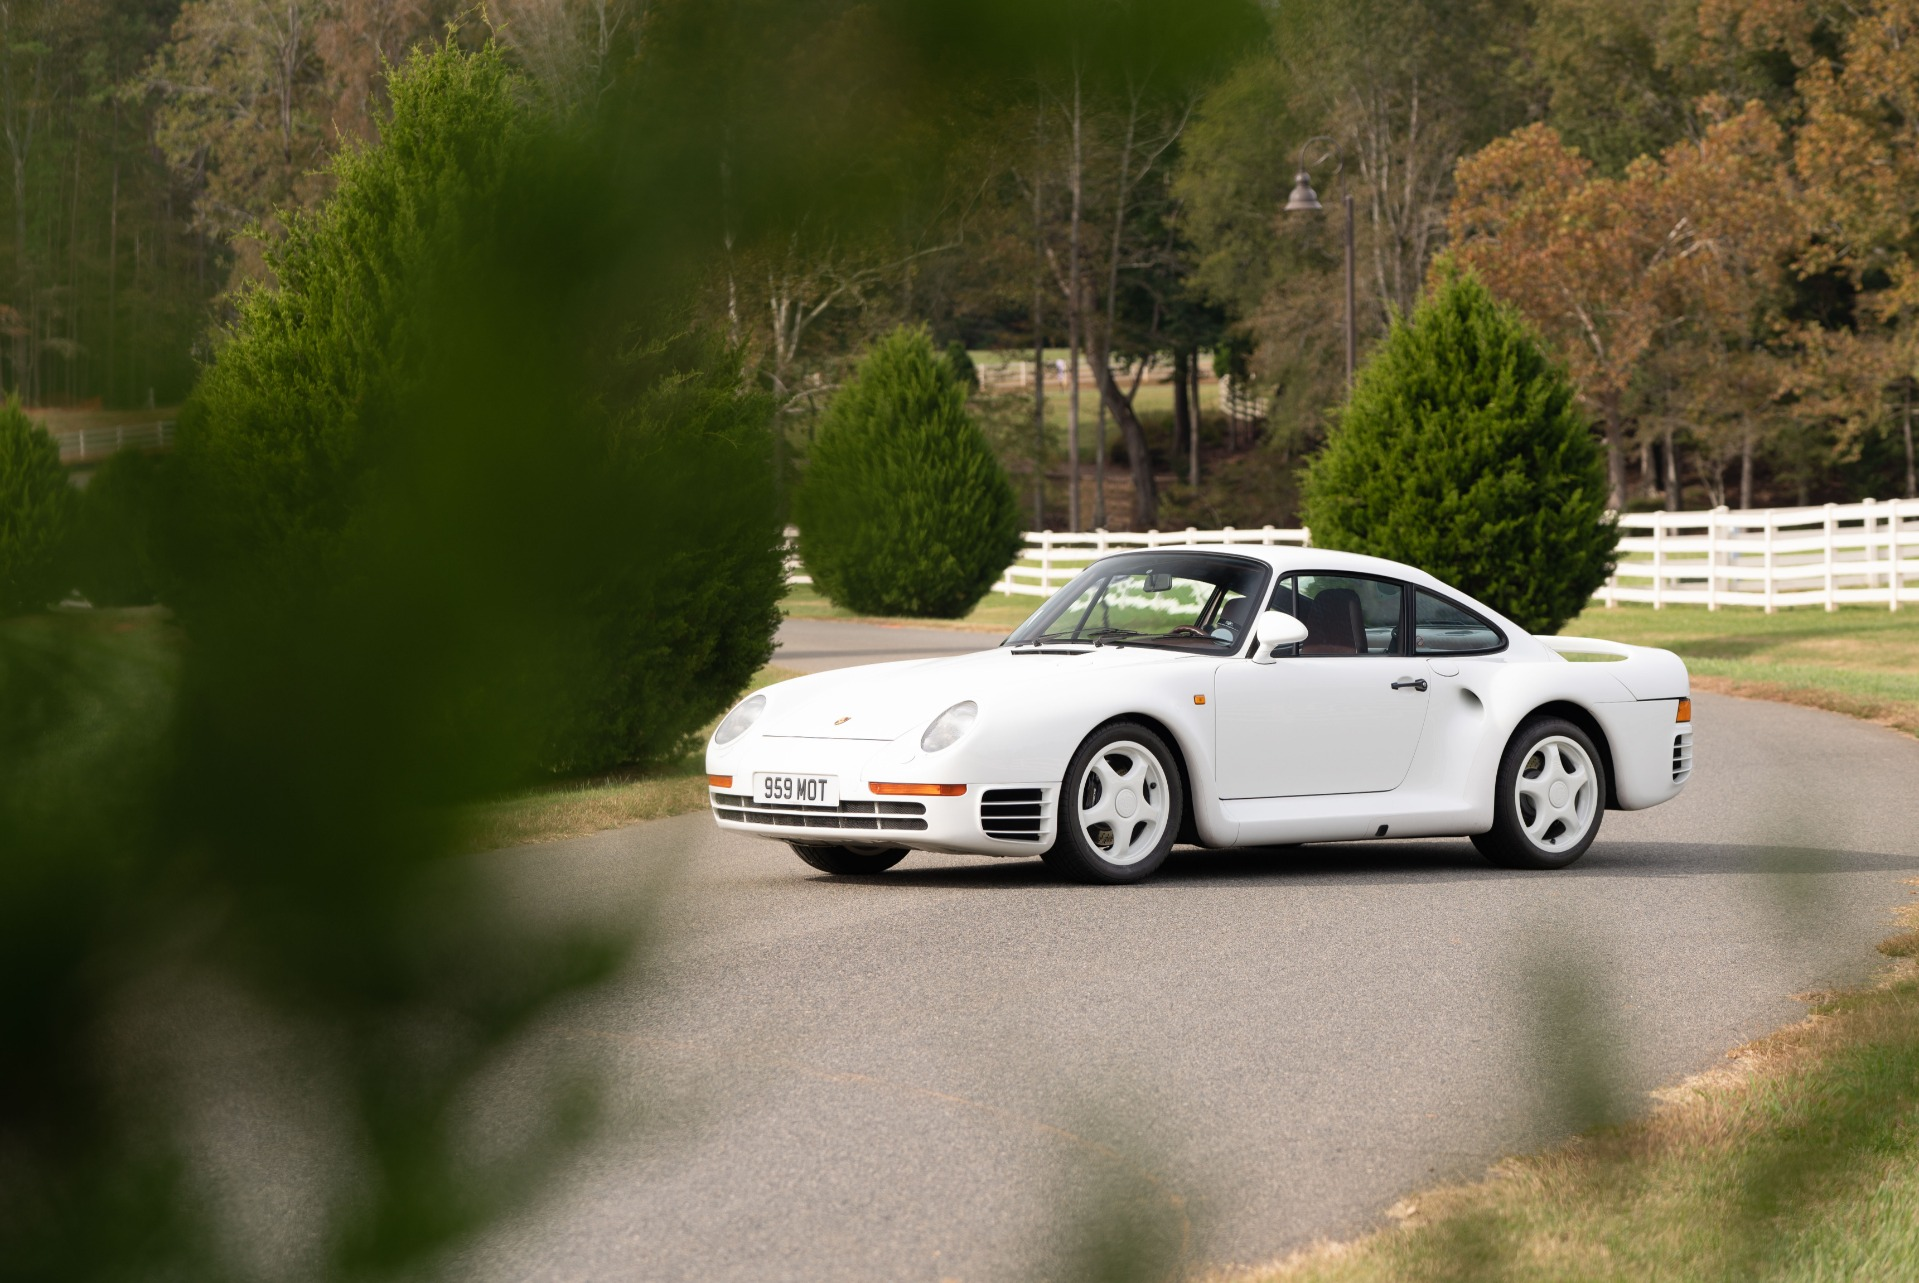 Used 1988 Porsche 959 KOMFORT COUPE / AWD / 6-SPEED MANUAL / ORIGINAL SUPERCAR for sale $1,425,000 at Formula Imports in Charlotte NC 28227 23